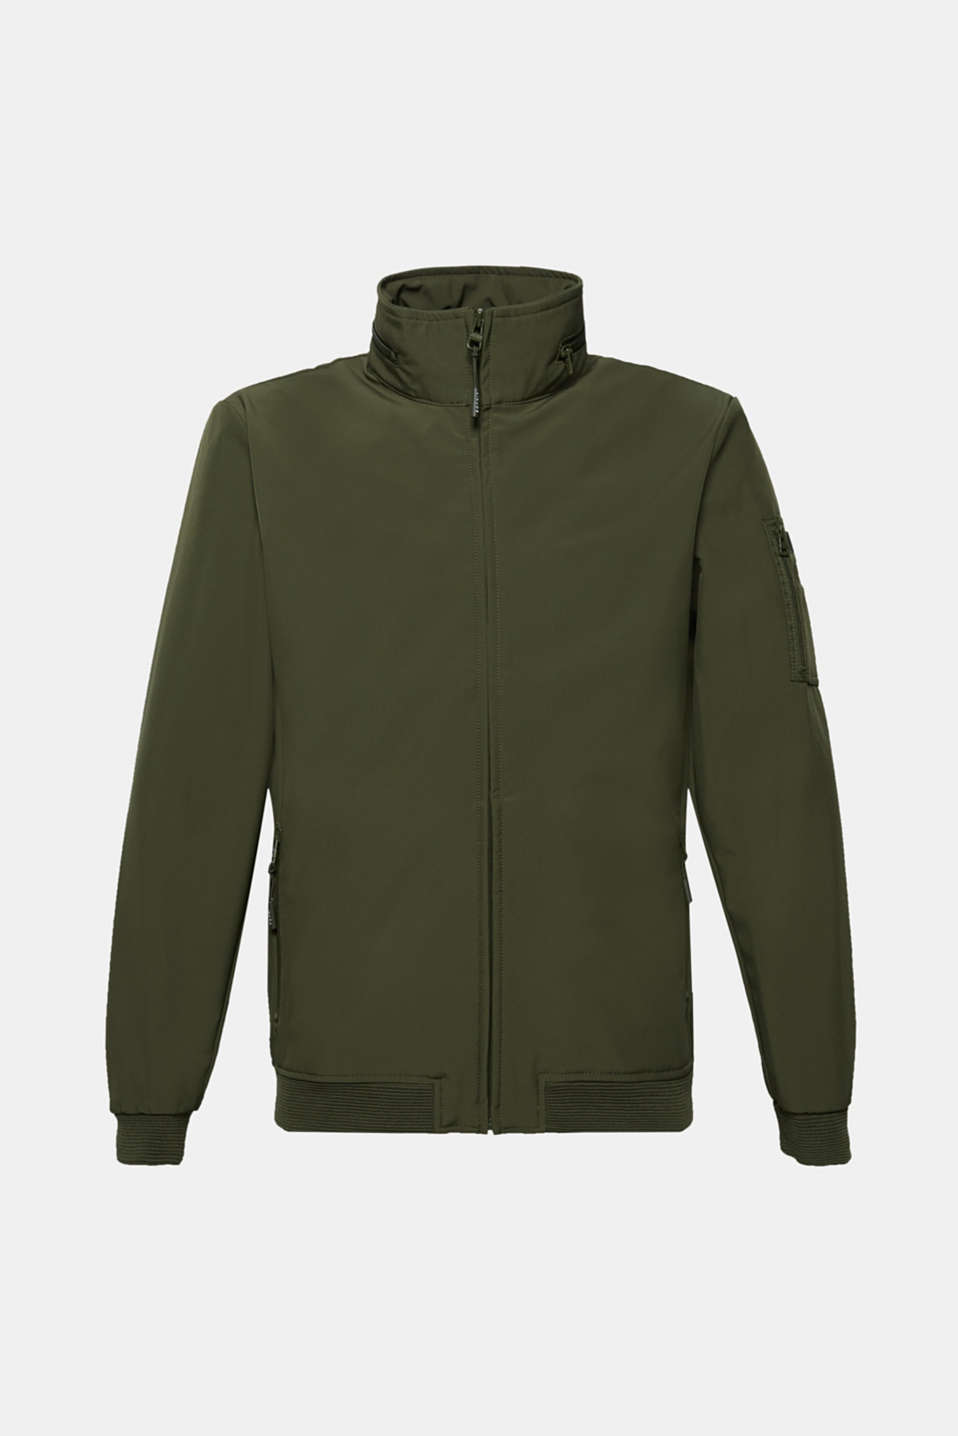 Jackets outdoor woven, KHAKI GREEN, detail image number 7